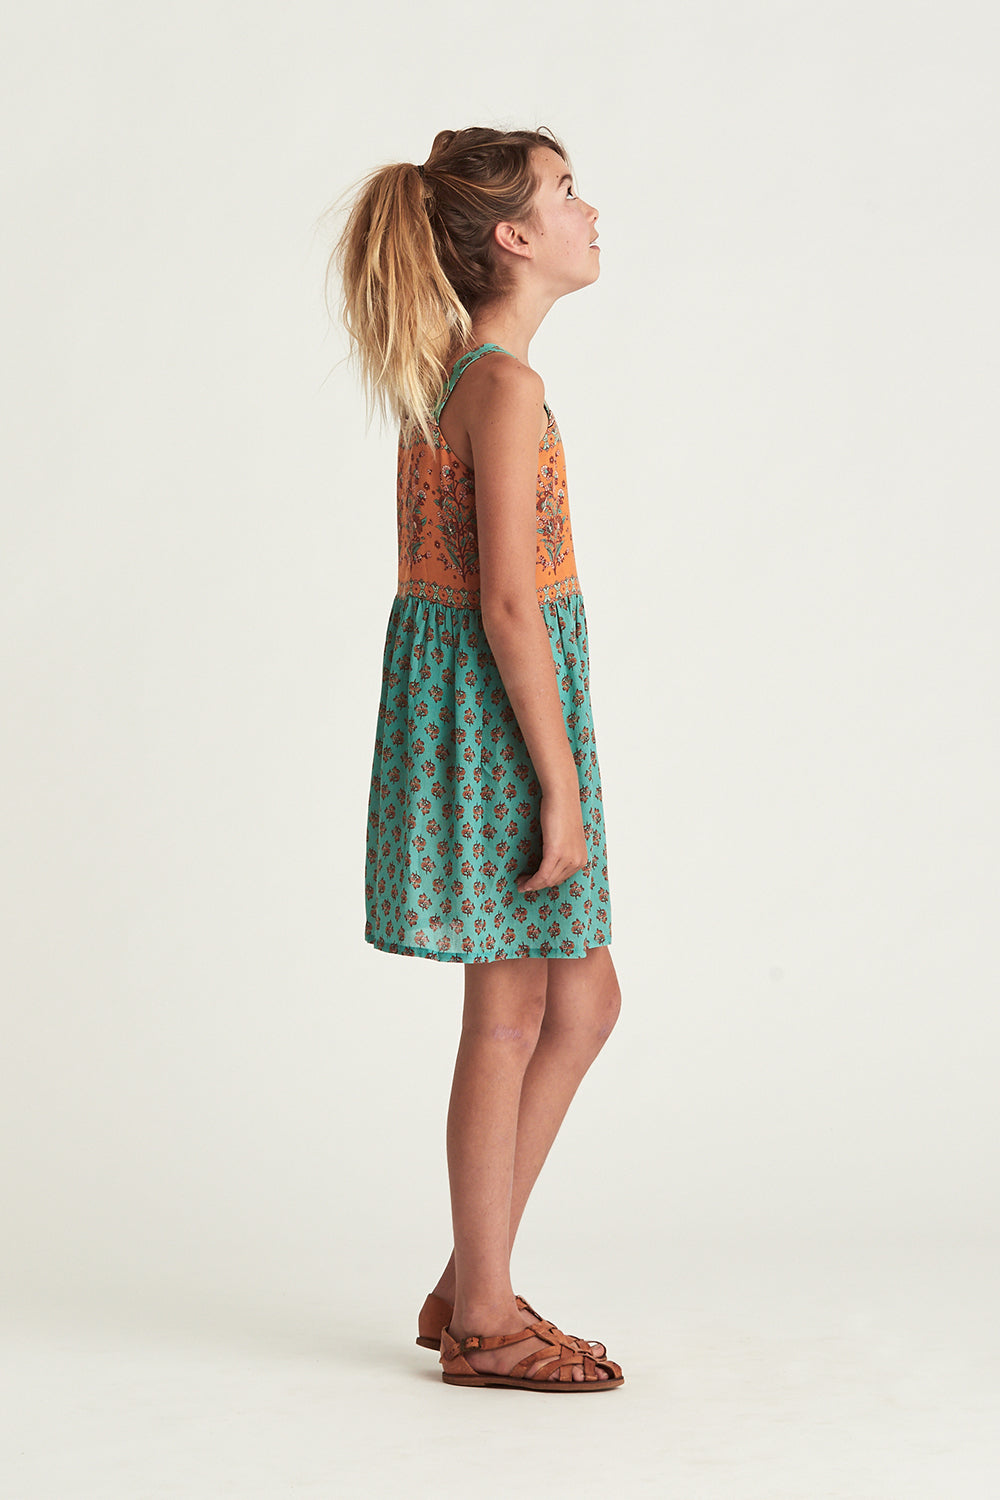 Serafina Littles Dress in Kingfisher